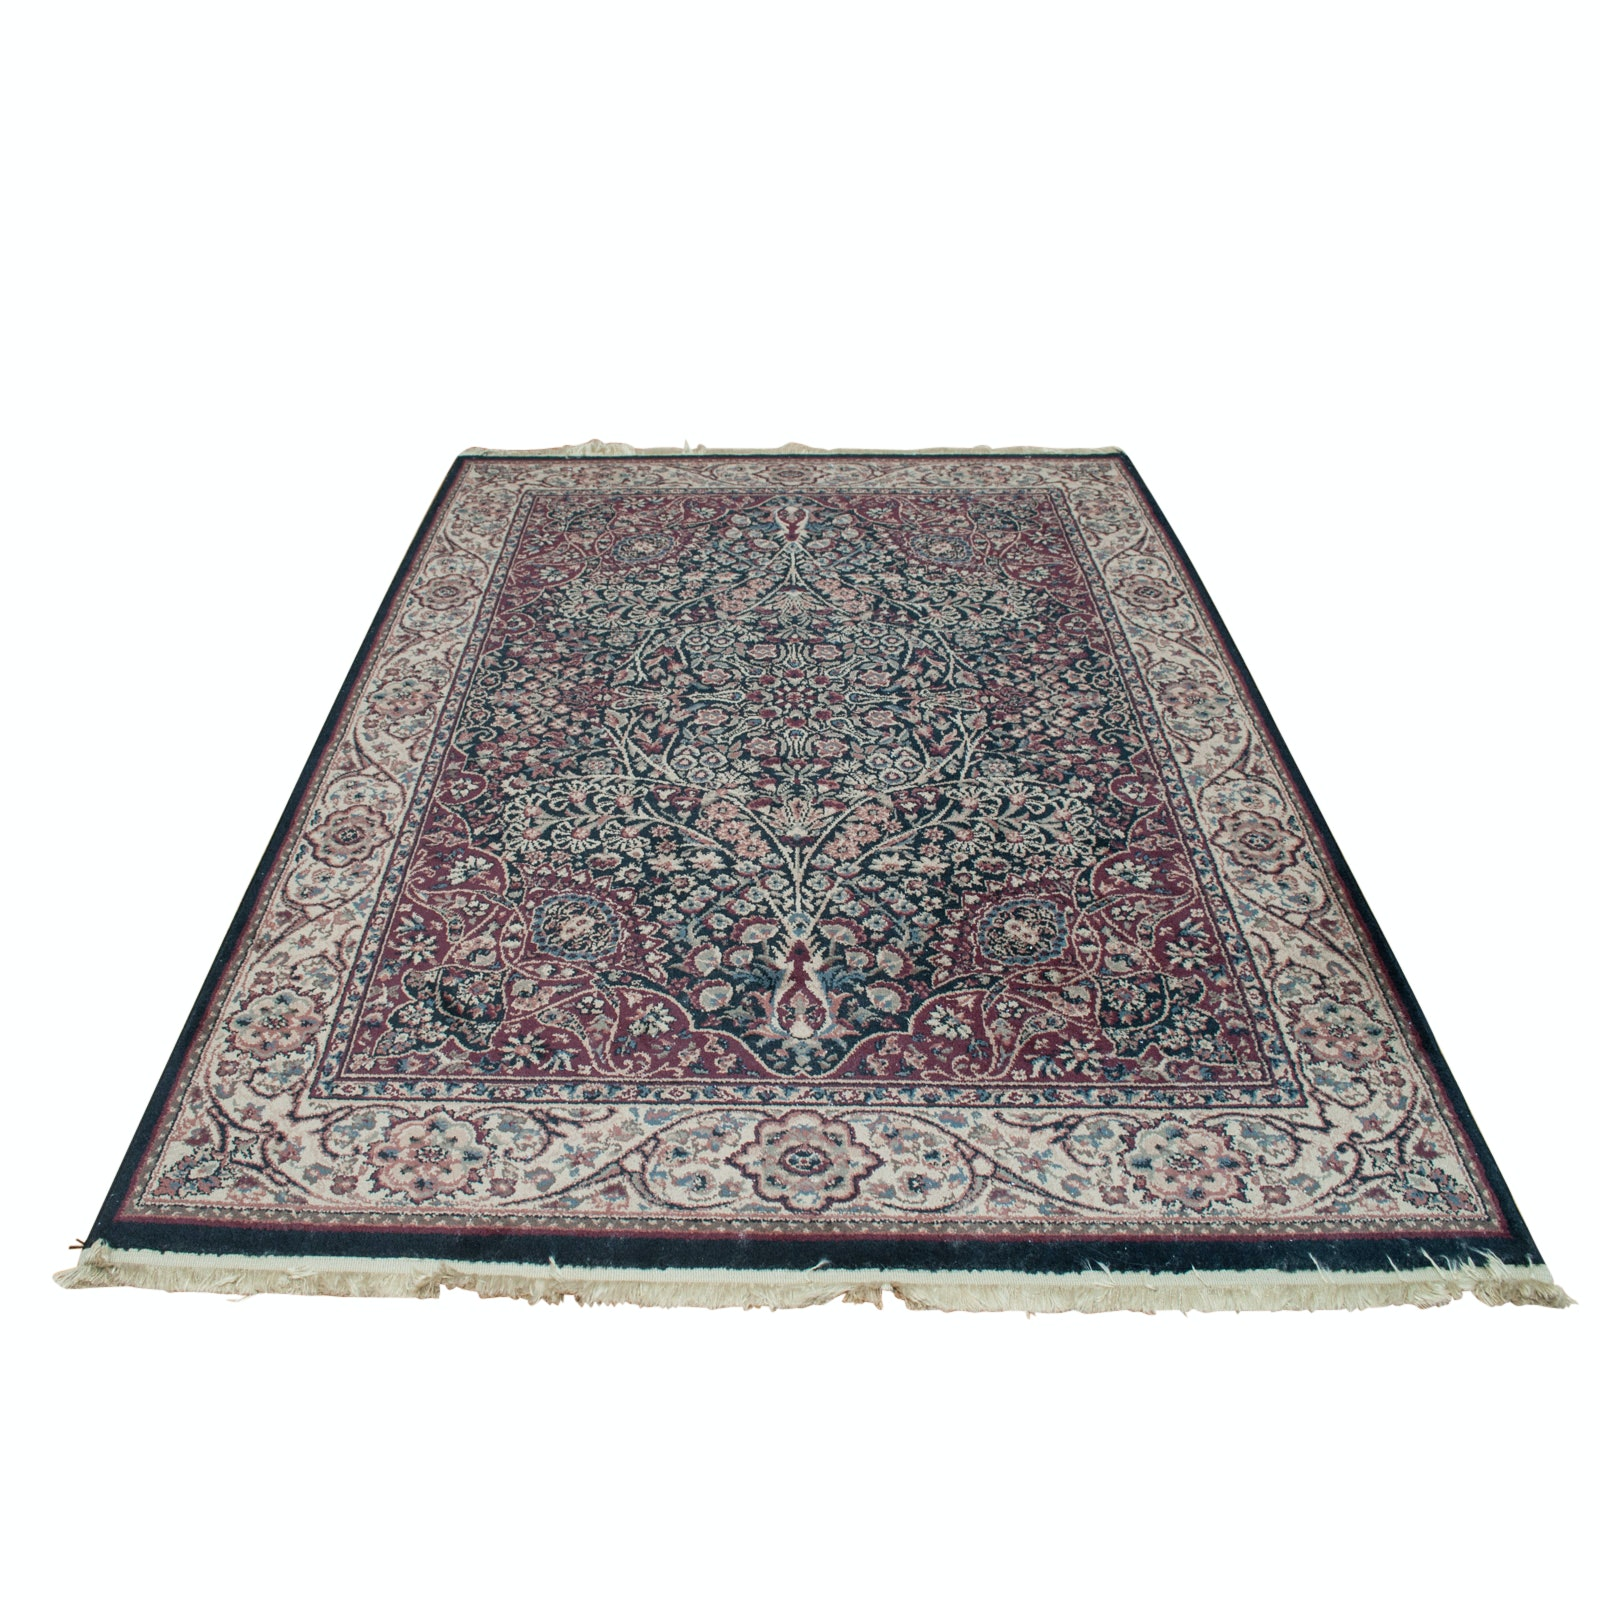 Machine Made Persian-Style Floral Area Rug